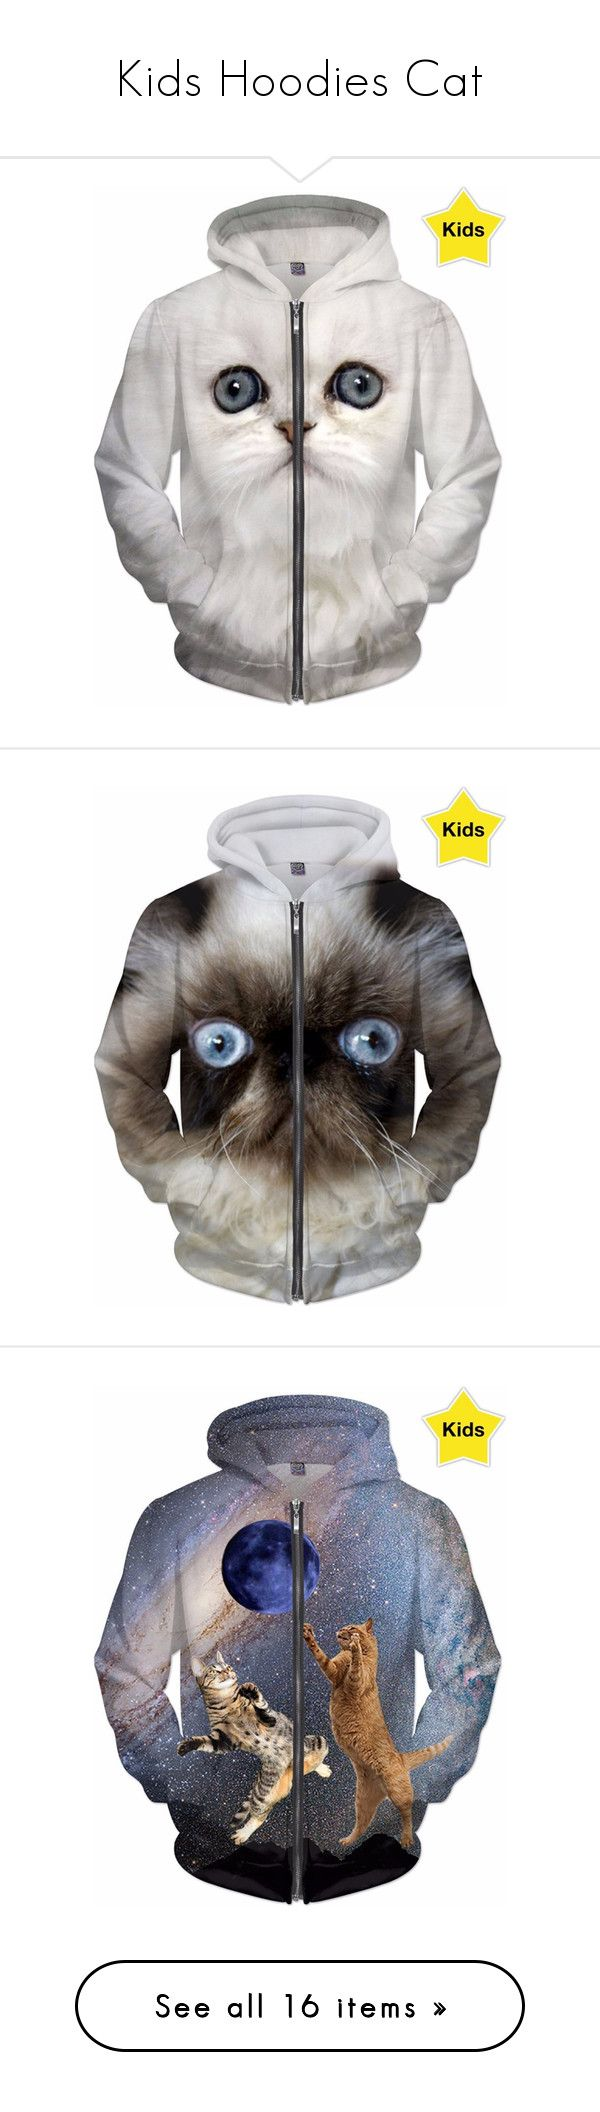 Kids Hoodies Cat by erikakaisersot on Polyvore featuring hoodie, cat and erikakaisersot